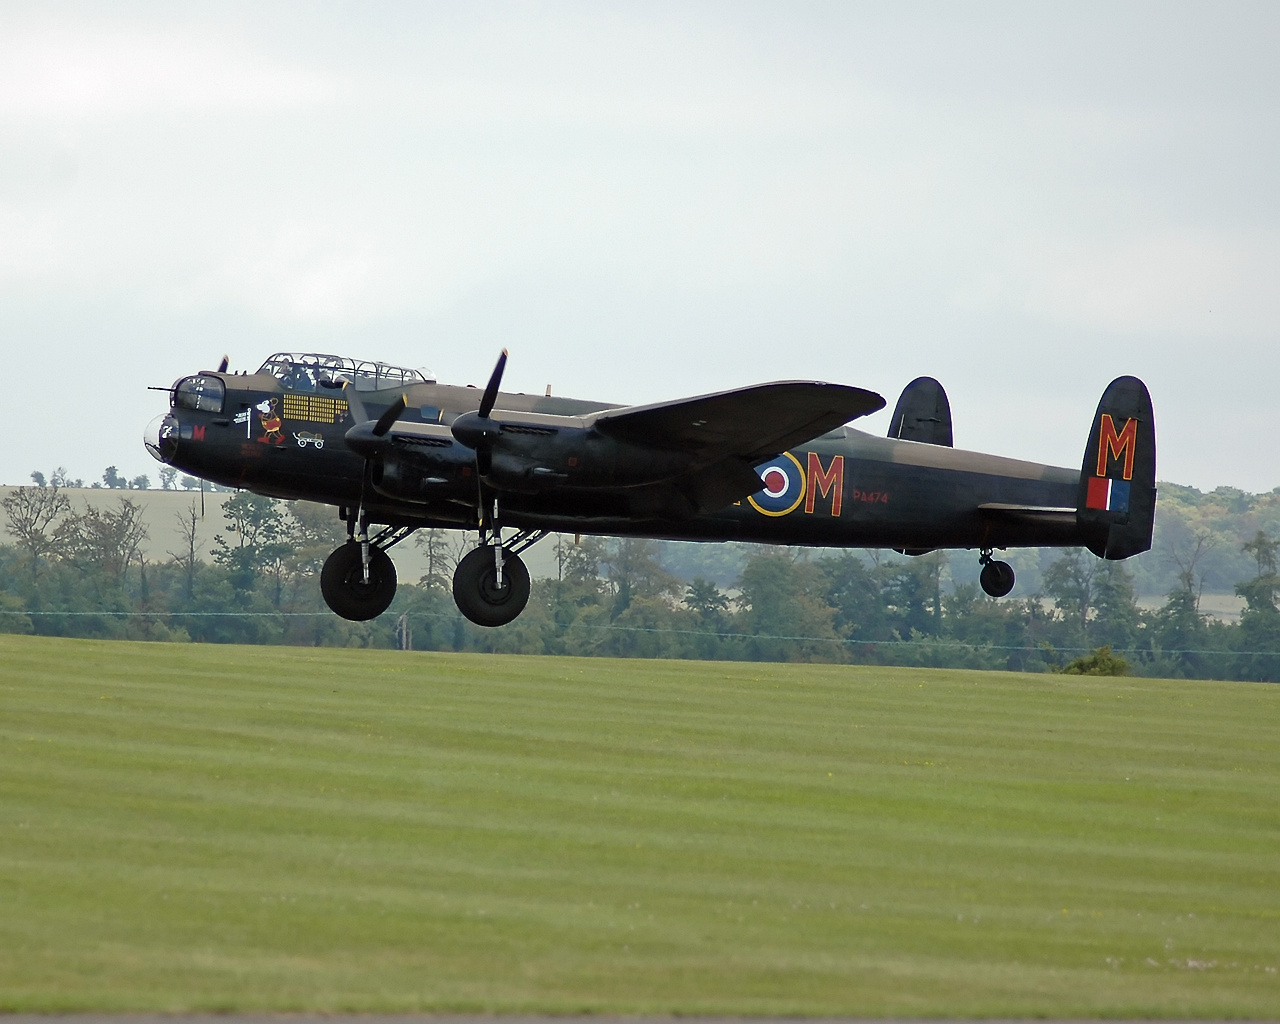 Lancaster B I PA474 of the Battle of Britain Memorial Flight, 2005